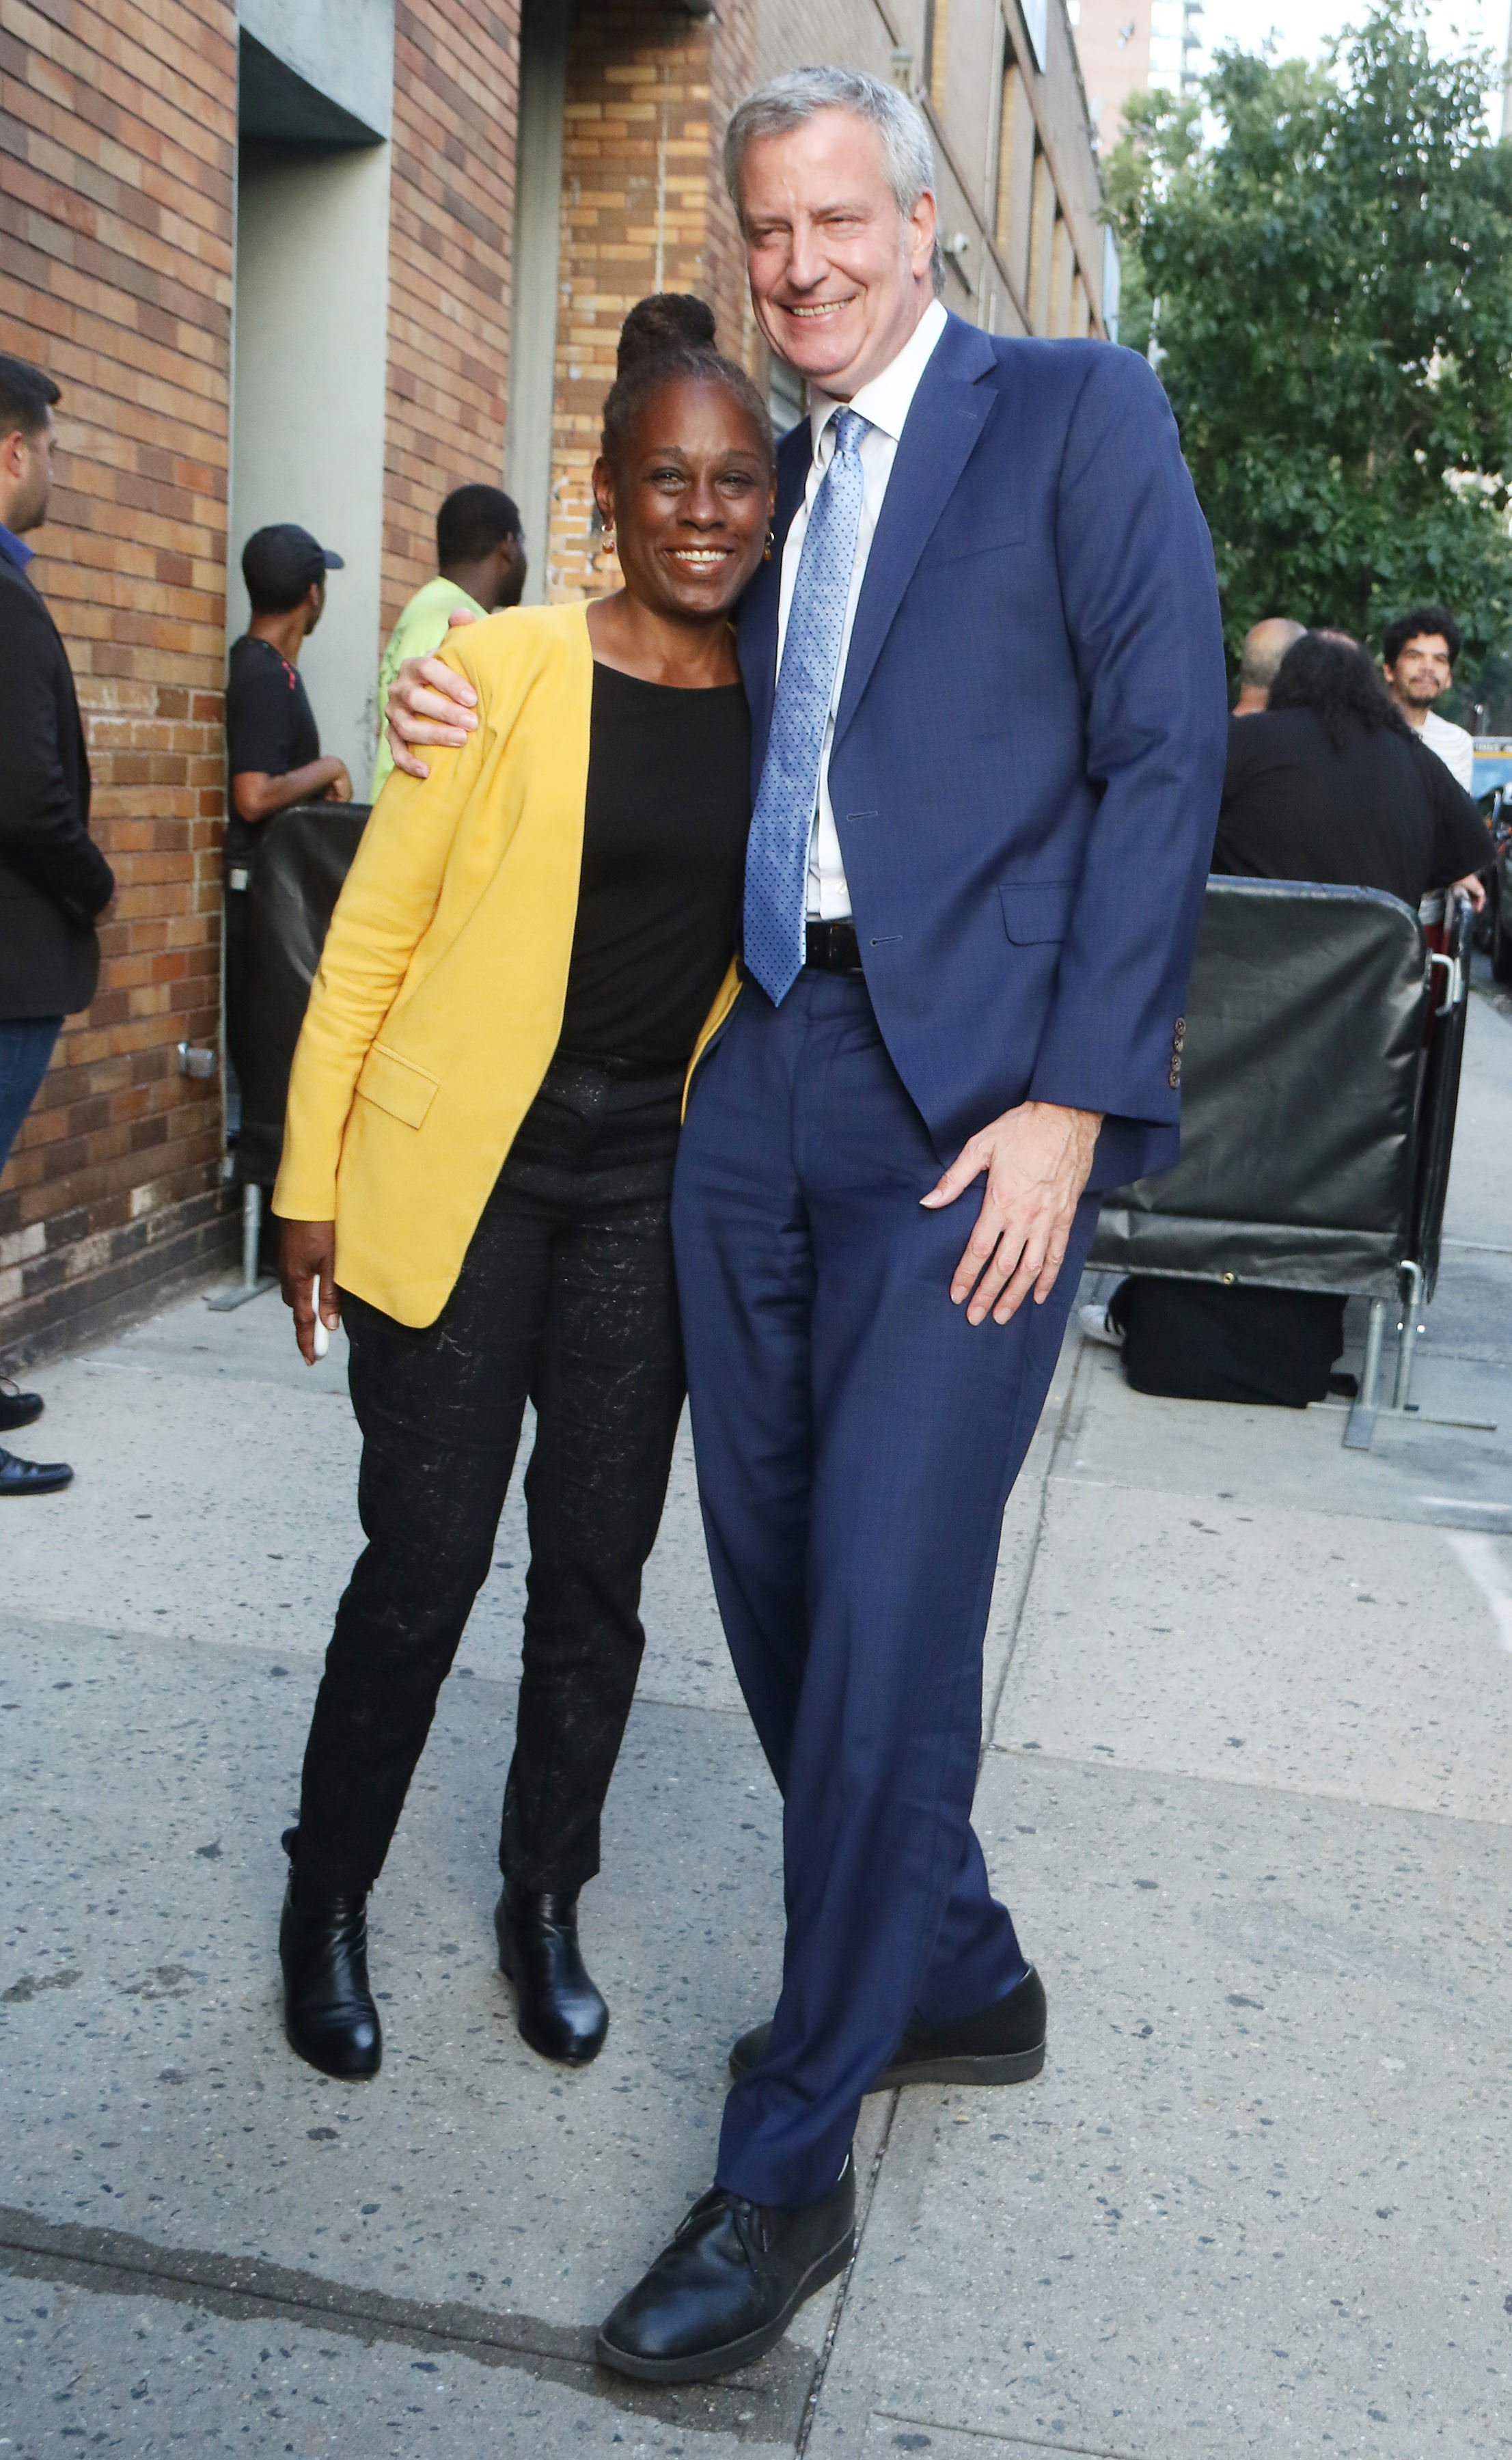 Chirlane McCray and Mayor of New York City and Presidential Candidate Bill de Blasio are seen on August 14, 2019 in New York City | Photo: GettyImages